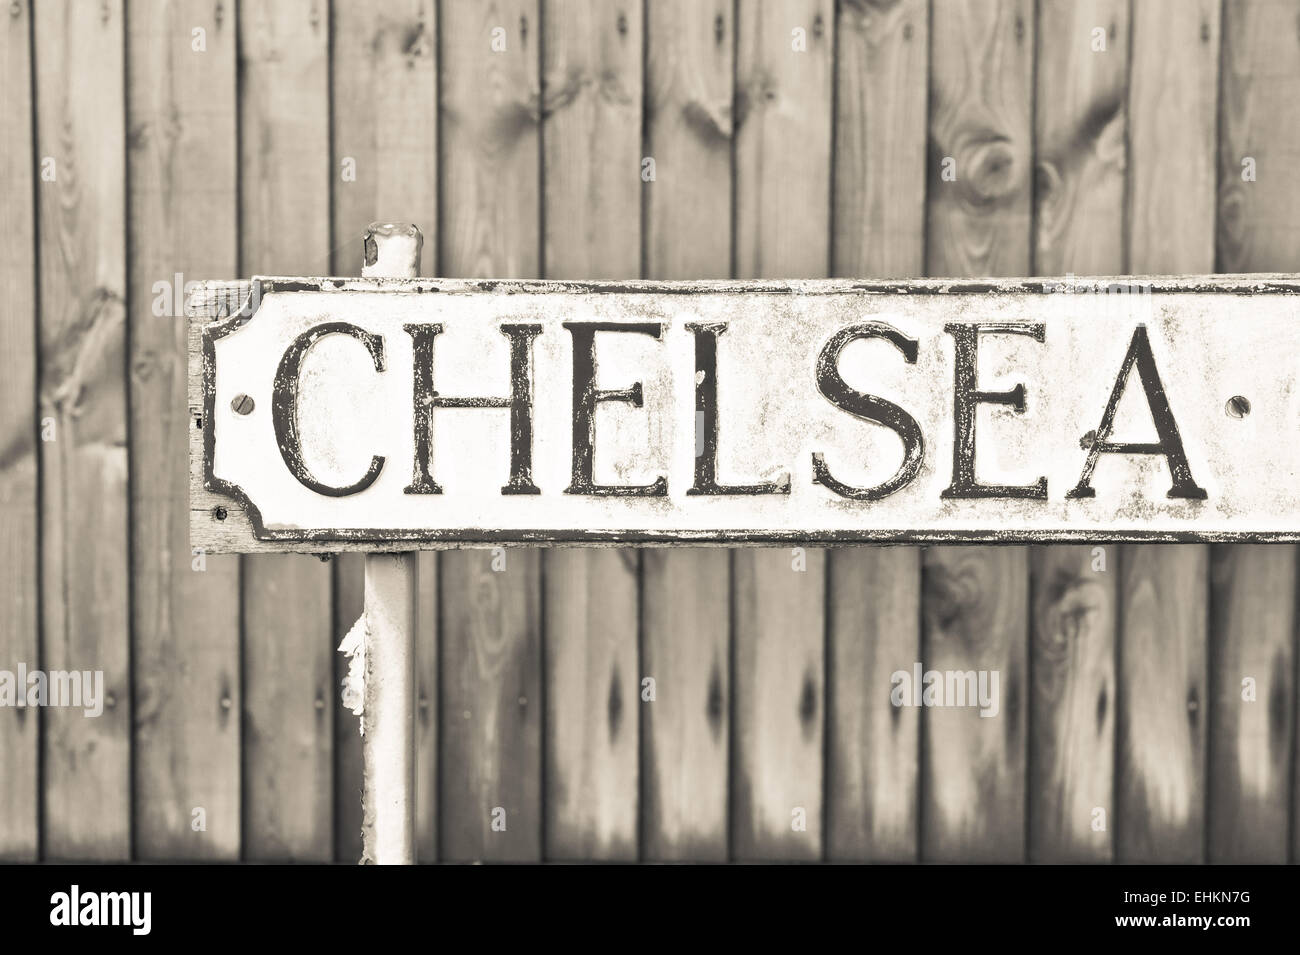 Chelsea road sign in front of a wooden fence in sepia tones - Stock Image